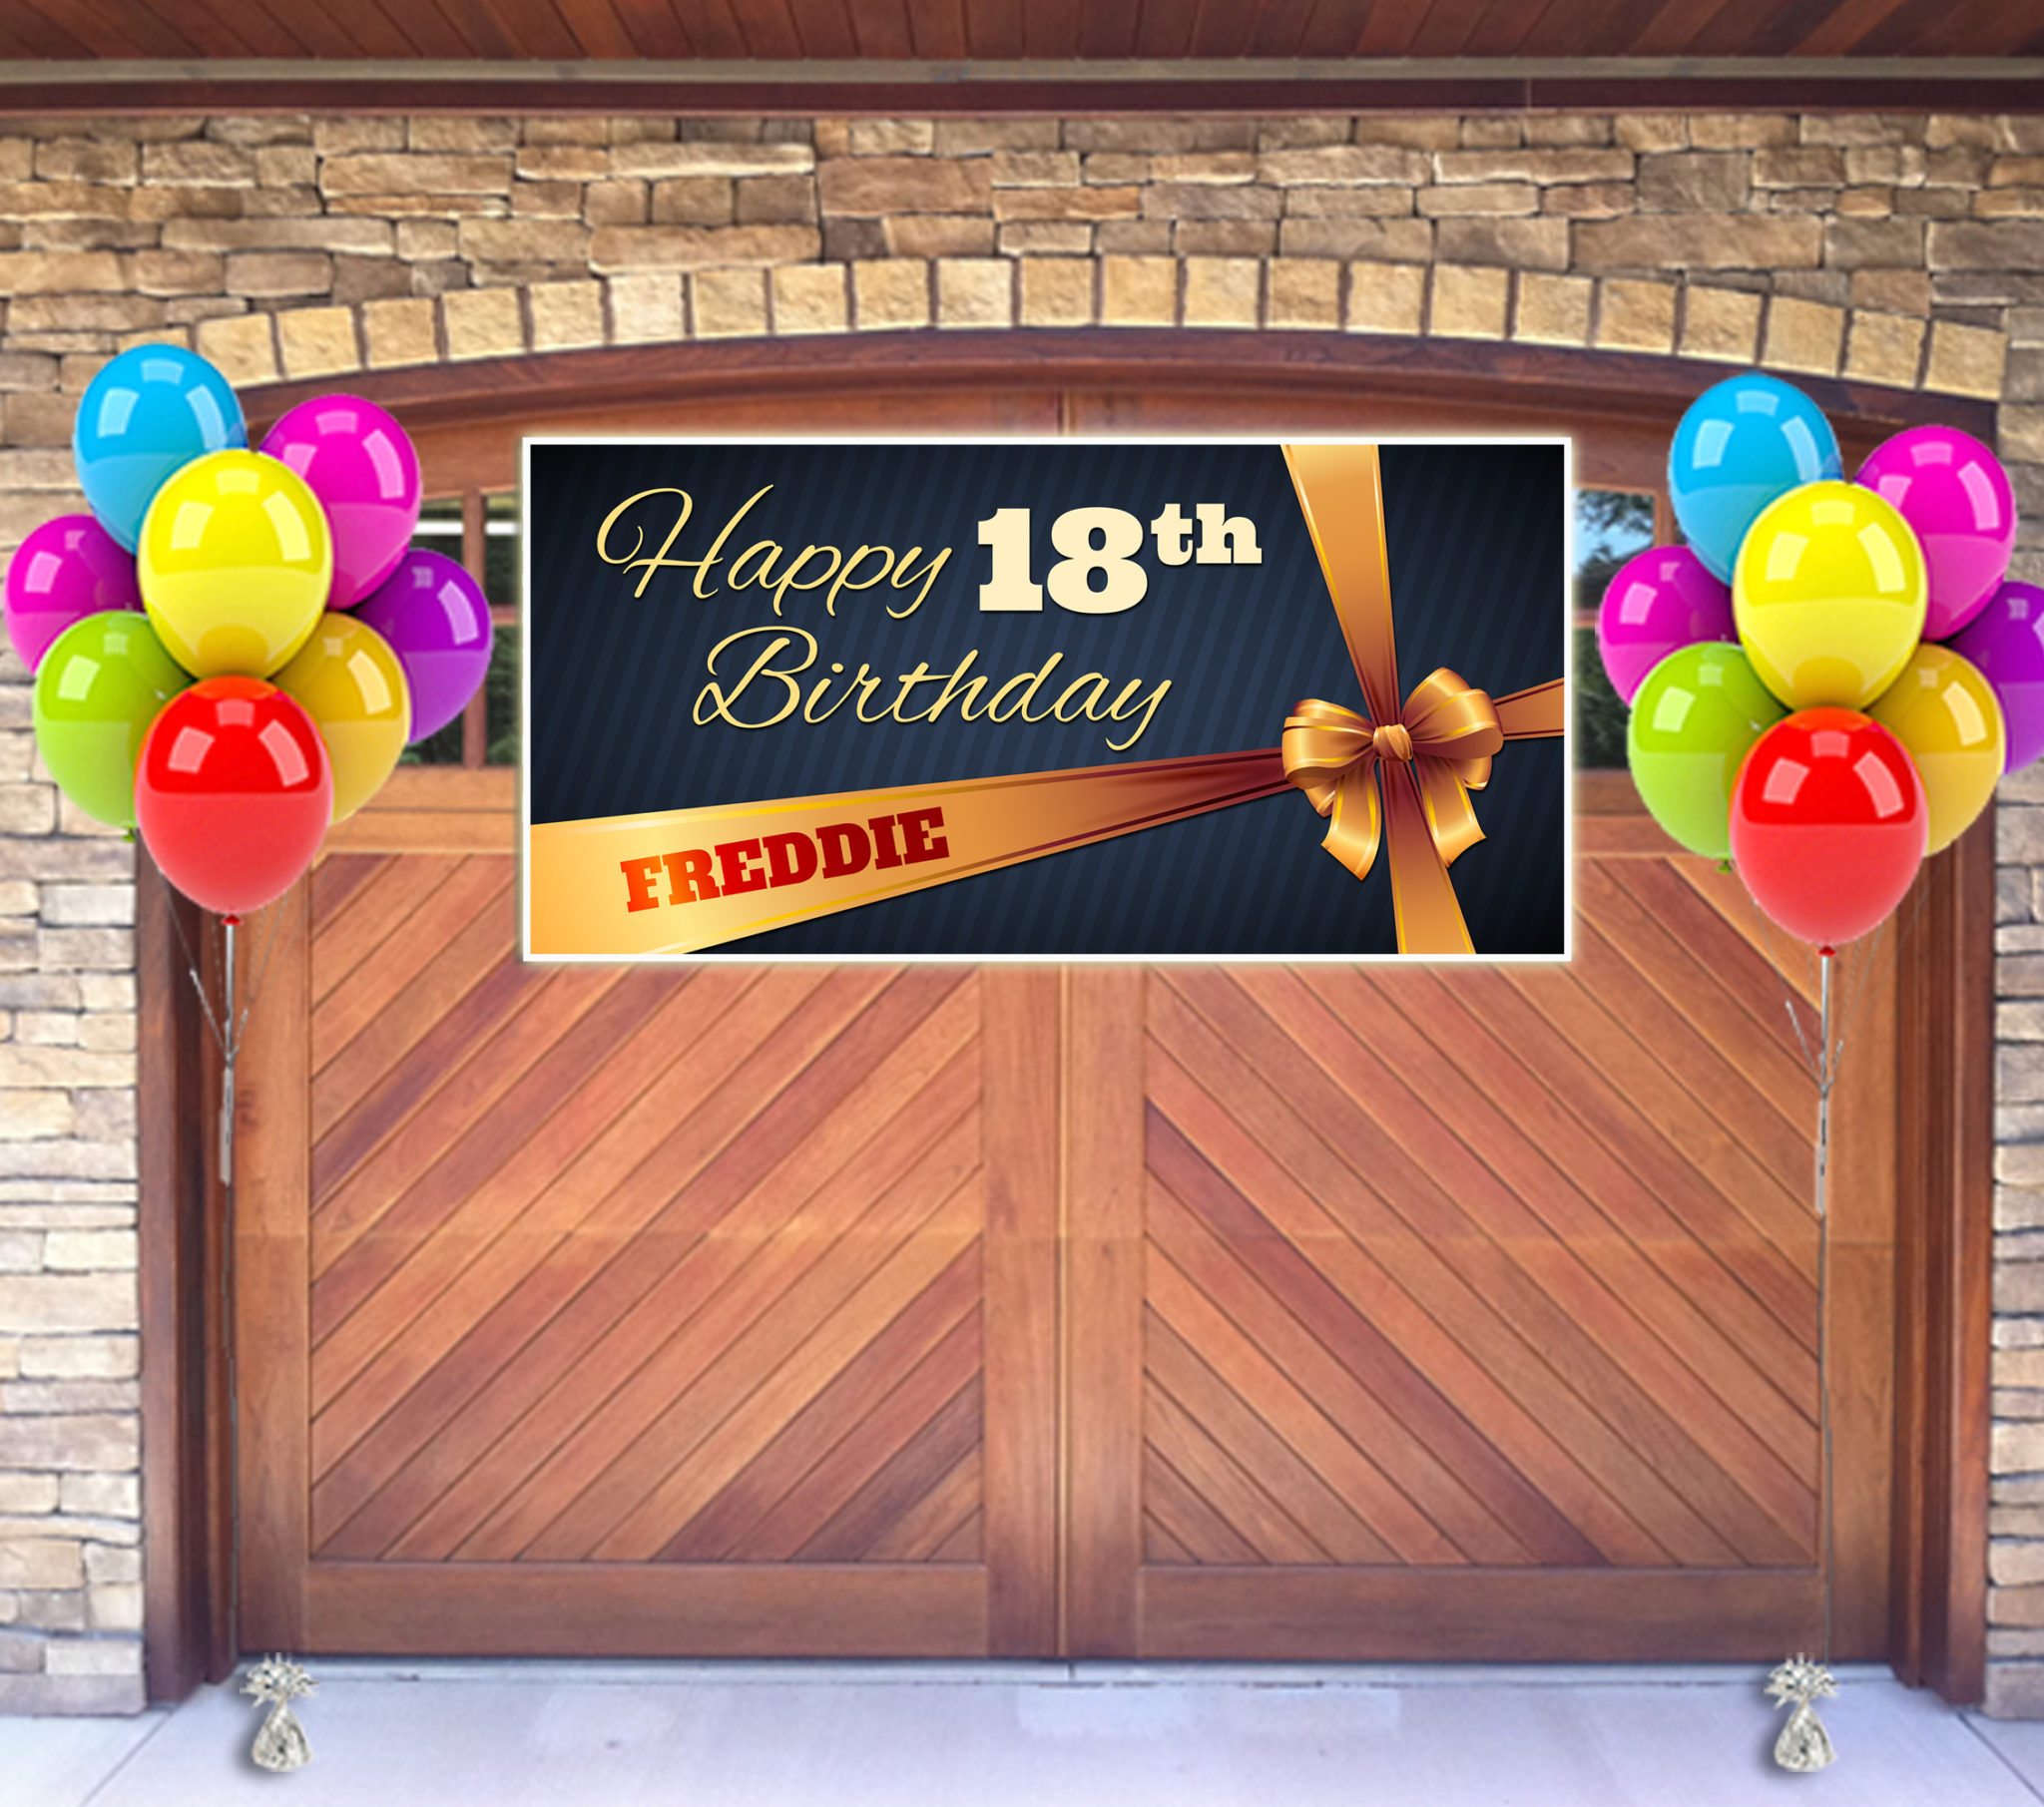 18th birthday banners personalized with photo ; 18th-birthday-banner-08-